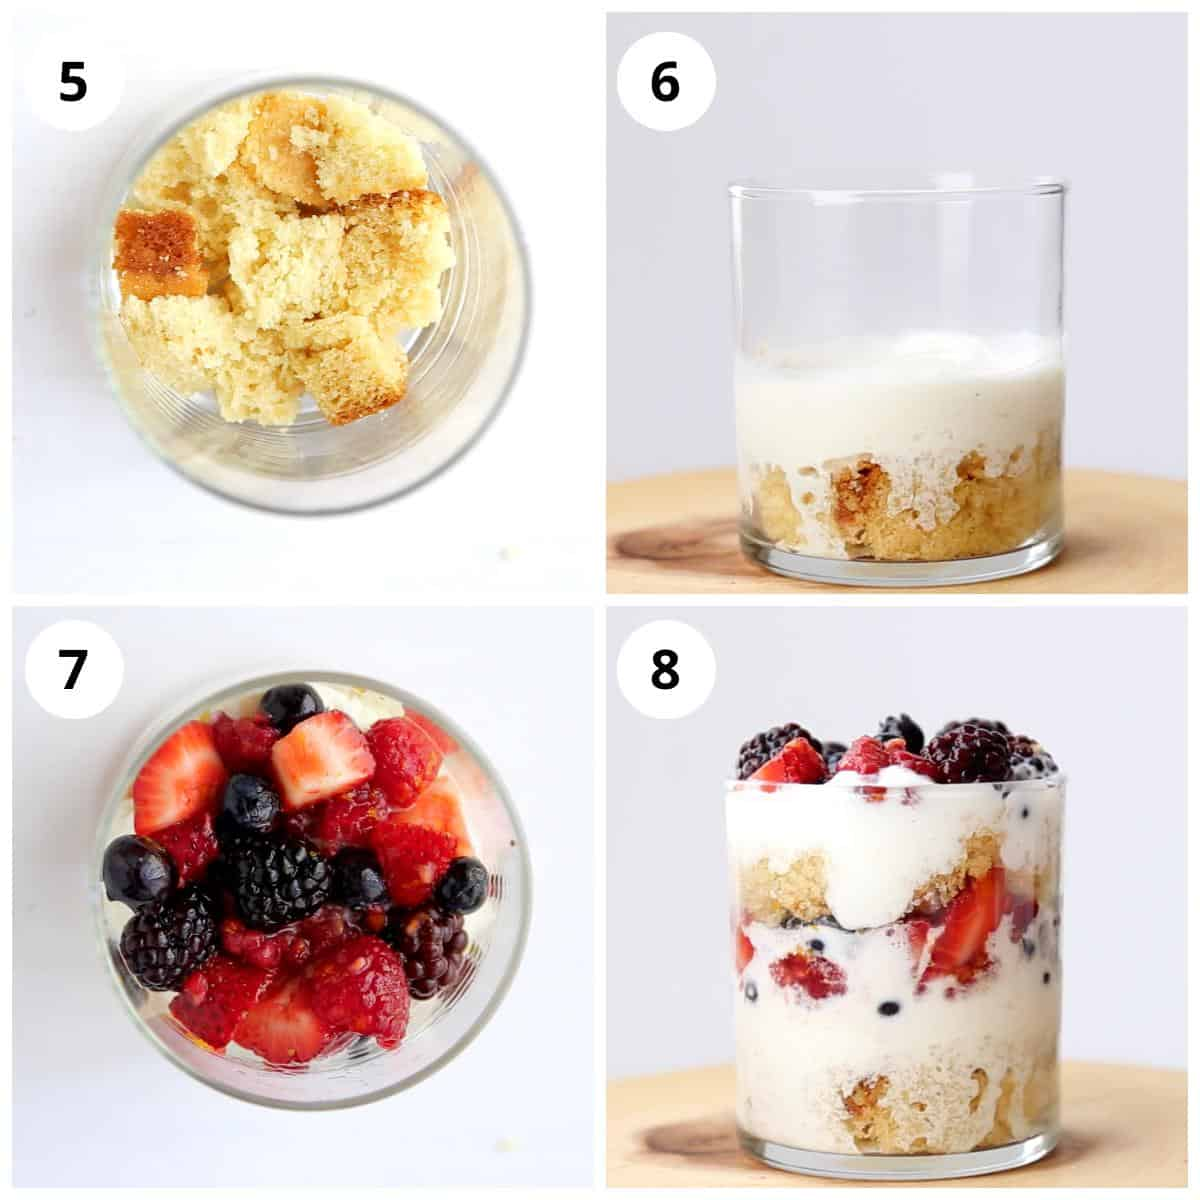 steps for assembling the berry parfait